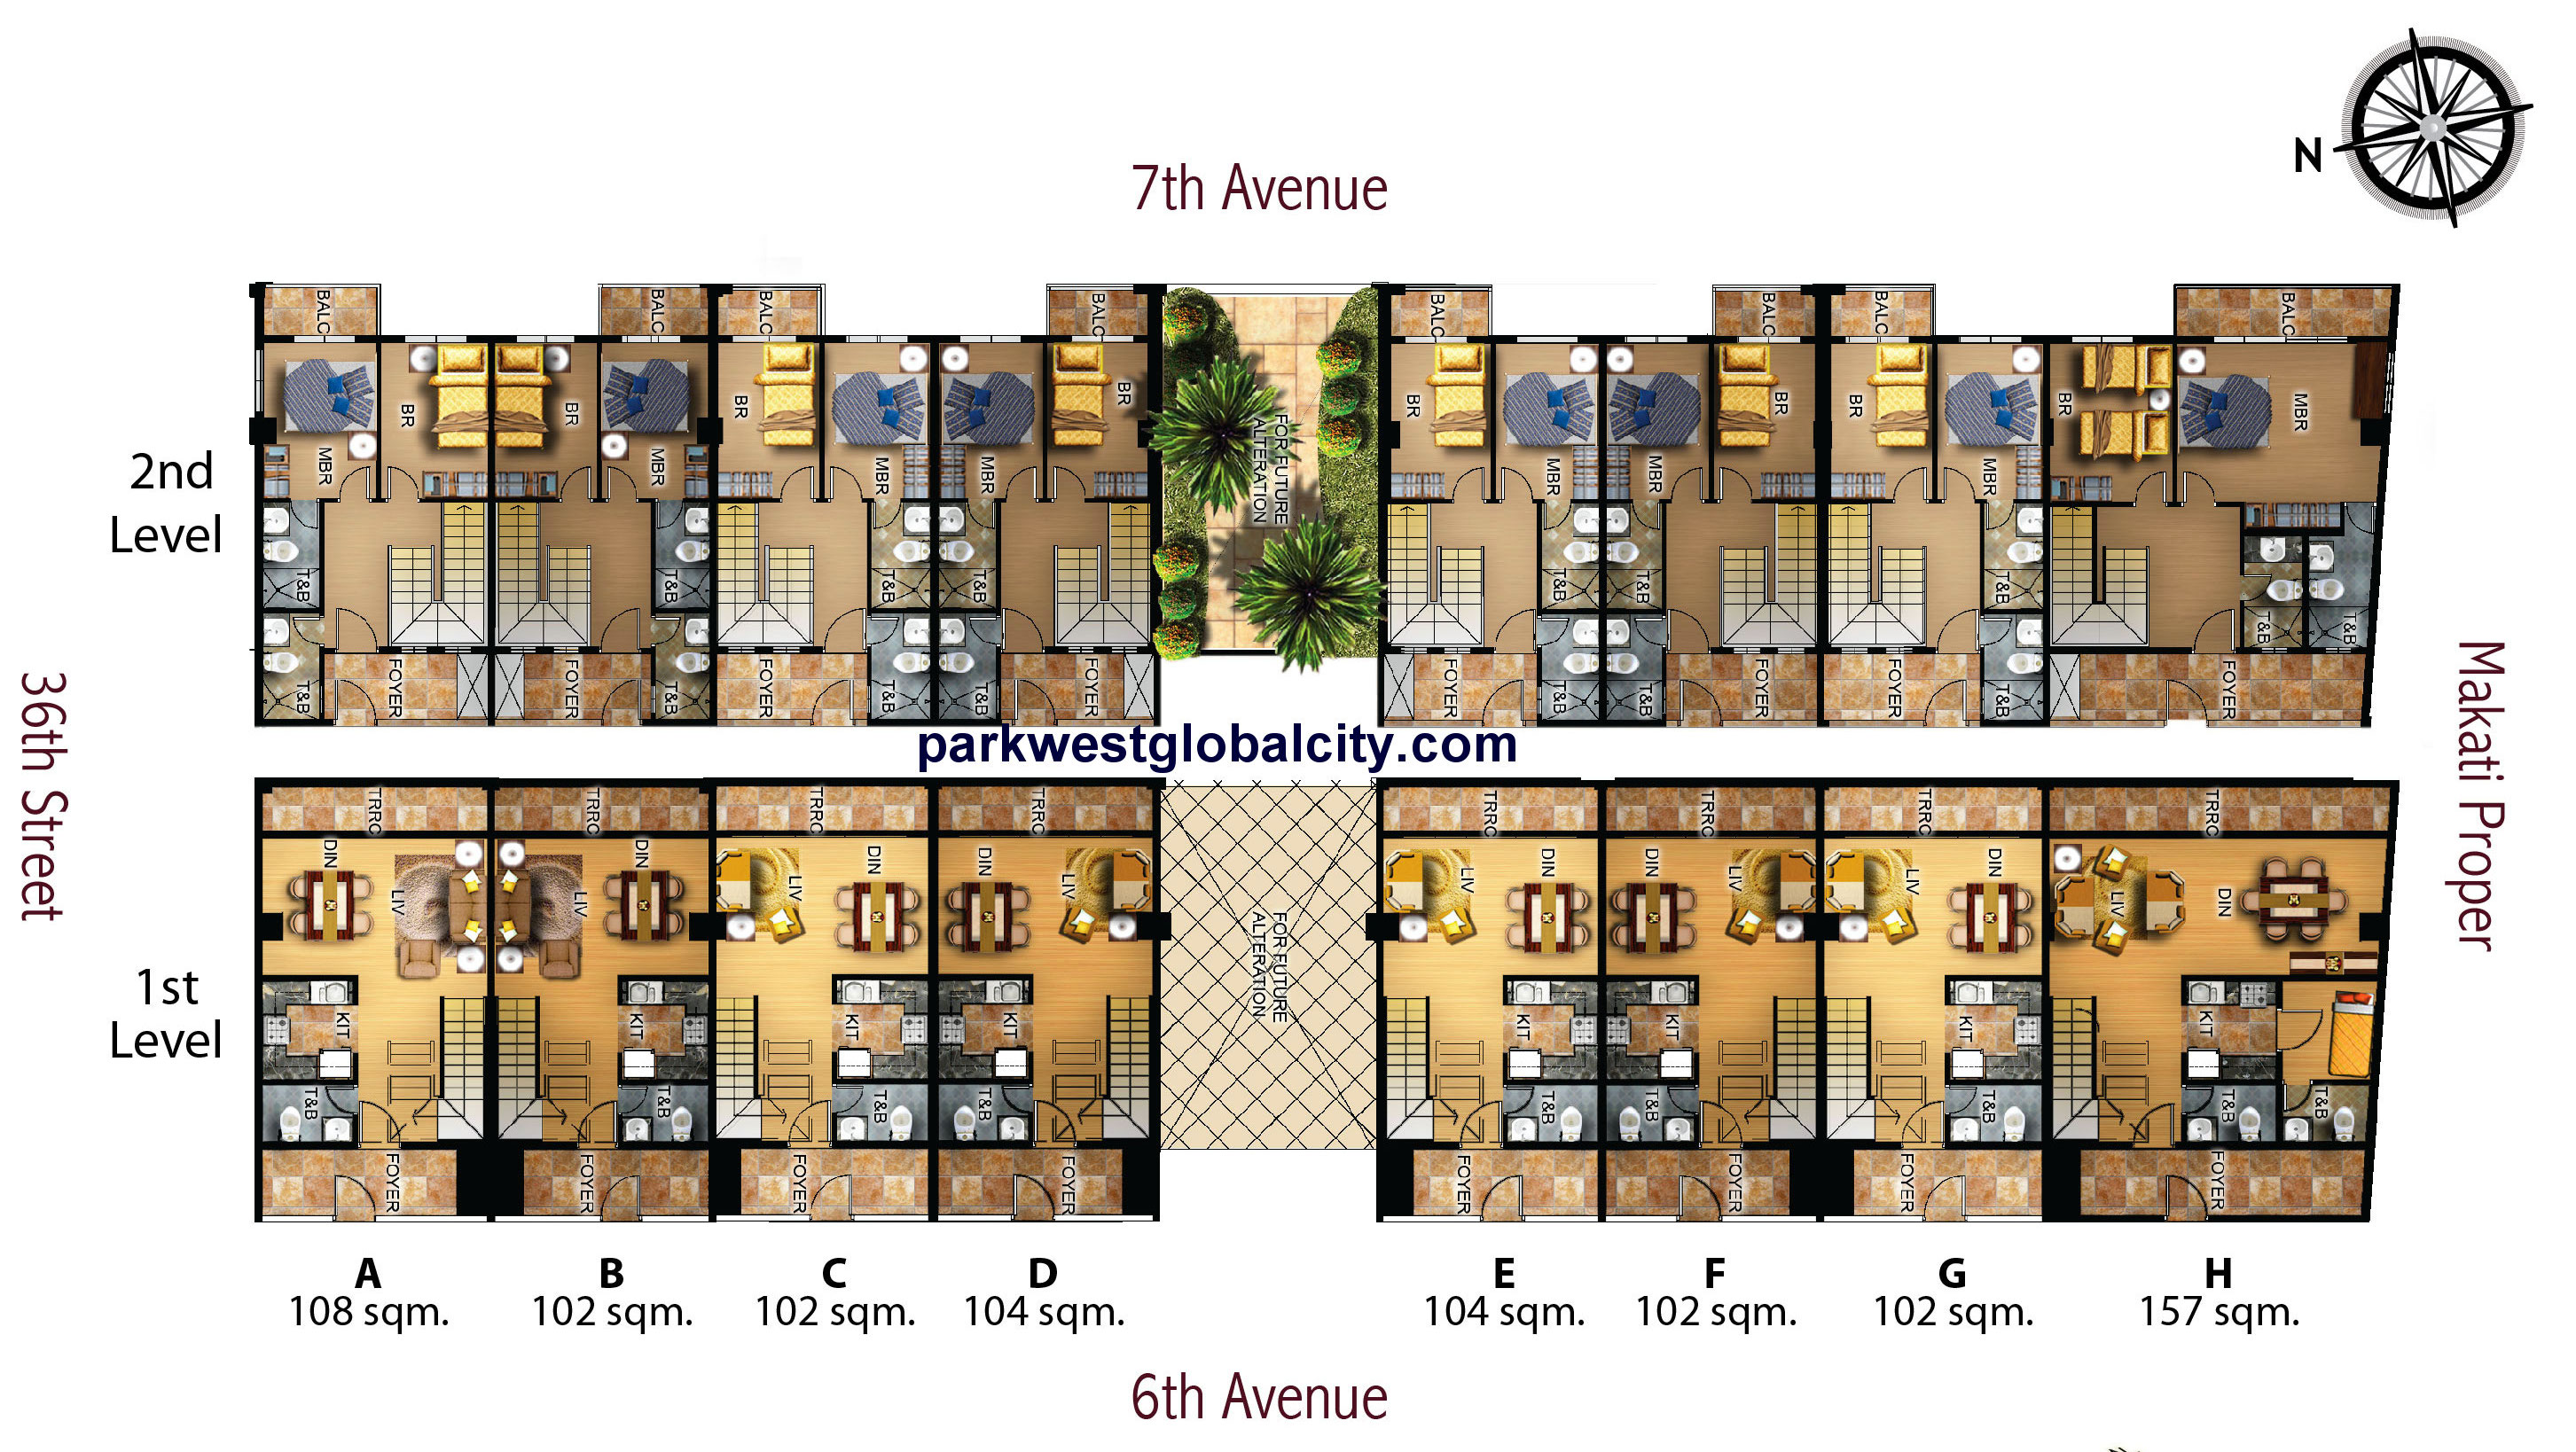 Floor Plans Park West Global City